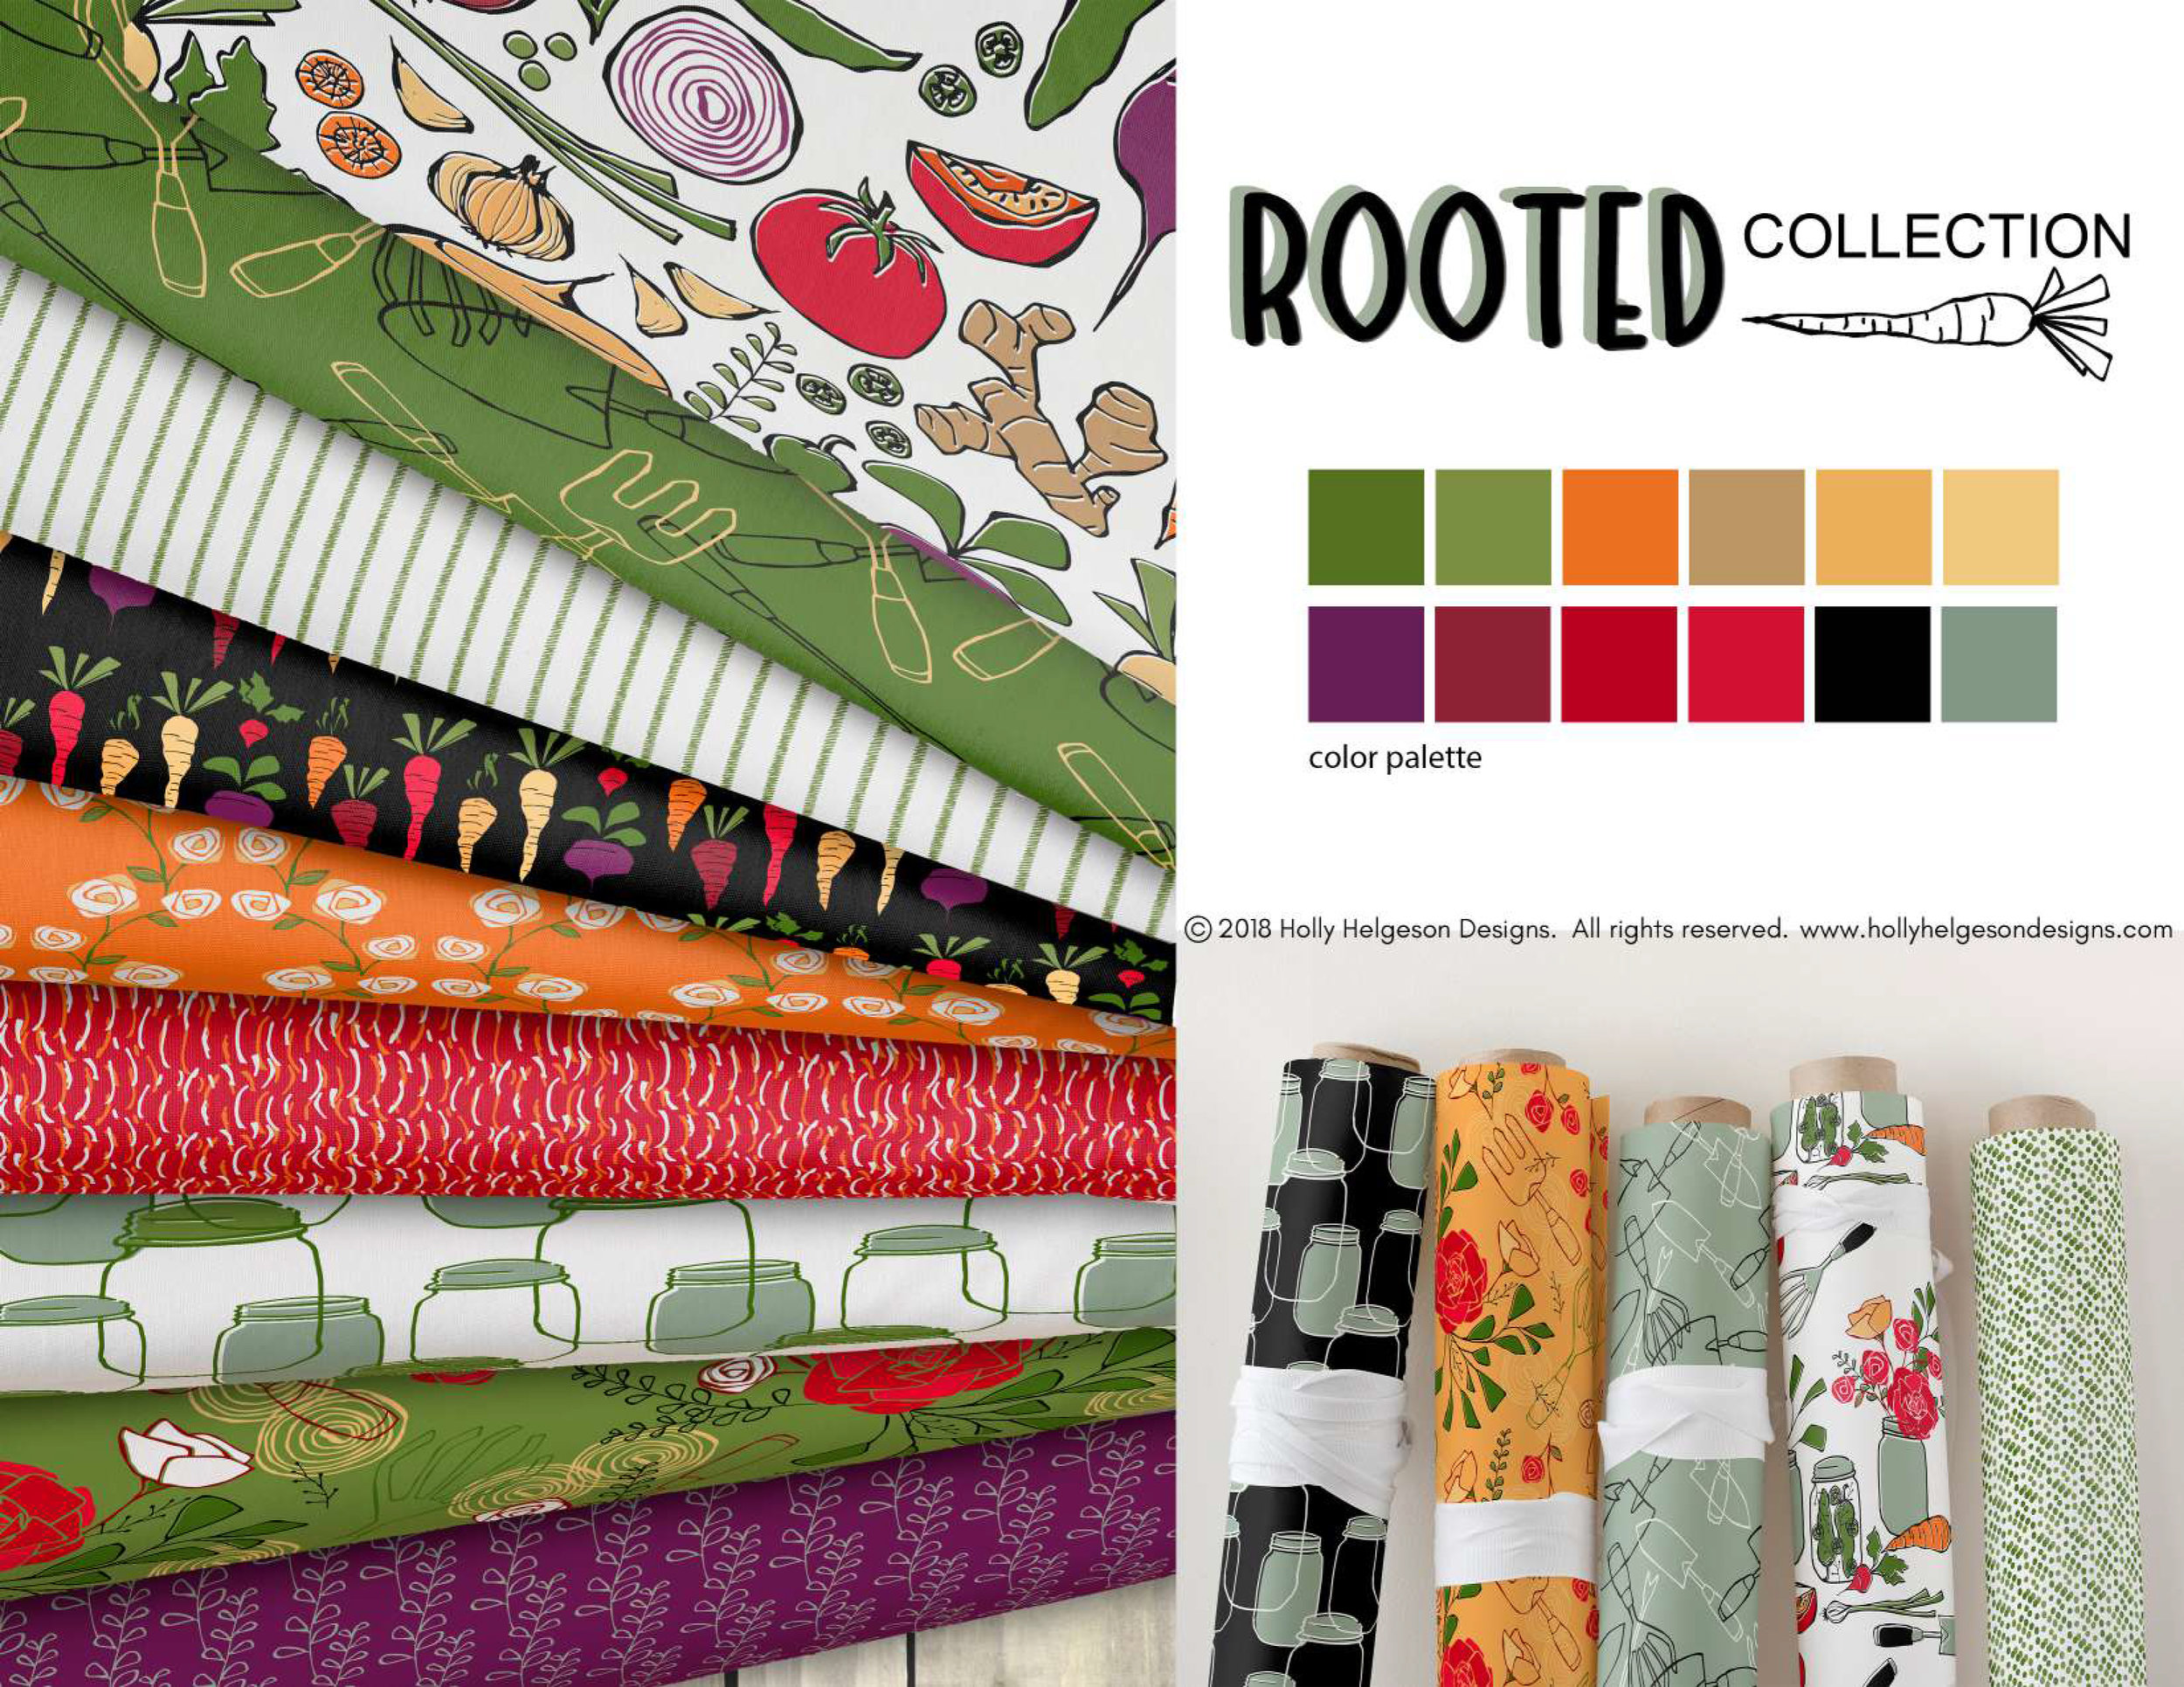 2018 Rooted Collection by Holly Helgeson-2.jpg